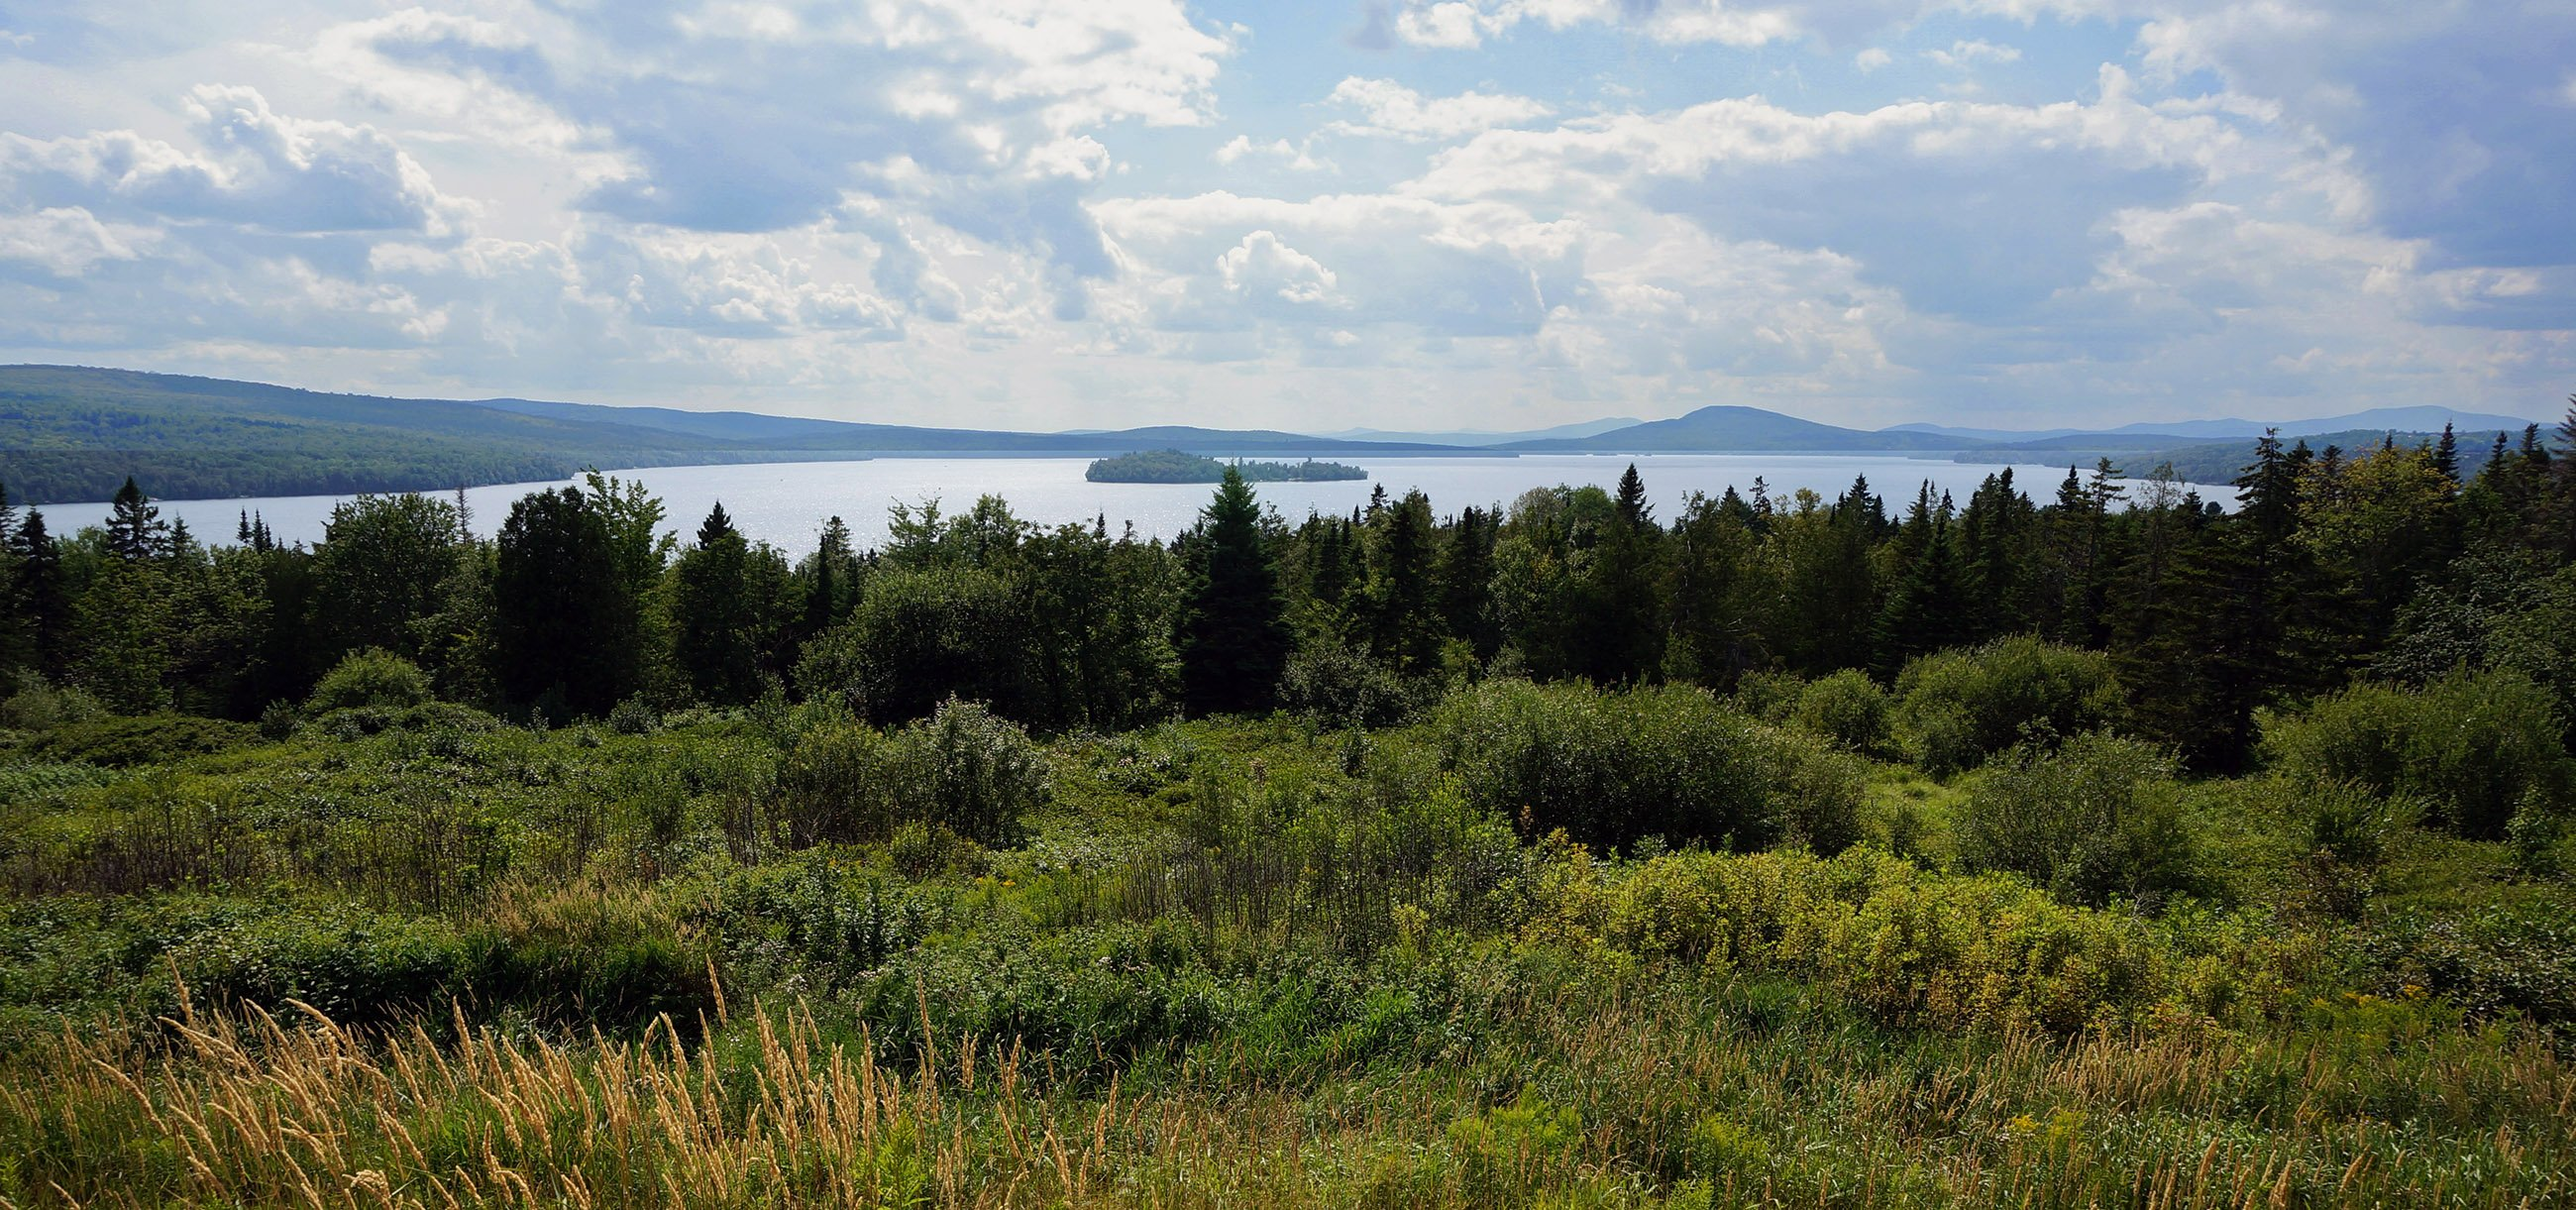 View of Rangeley Lake, one of the region's many lakes, ponds, and waterways.